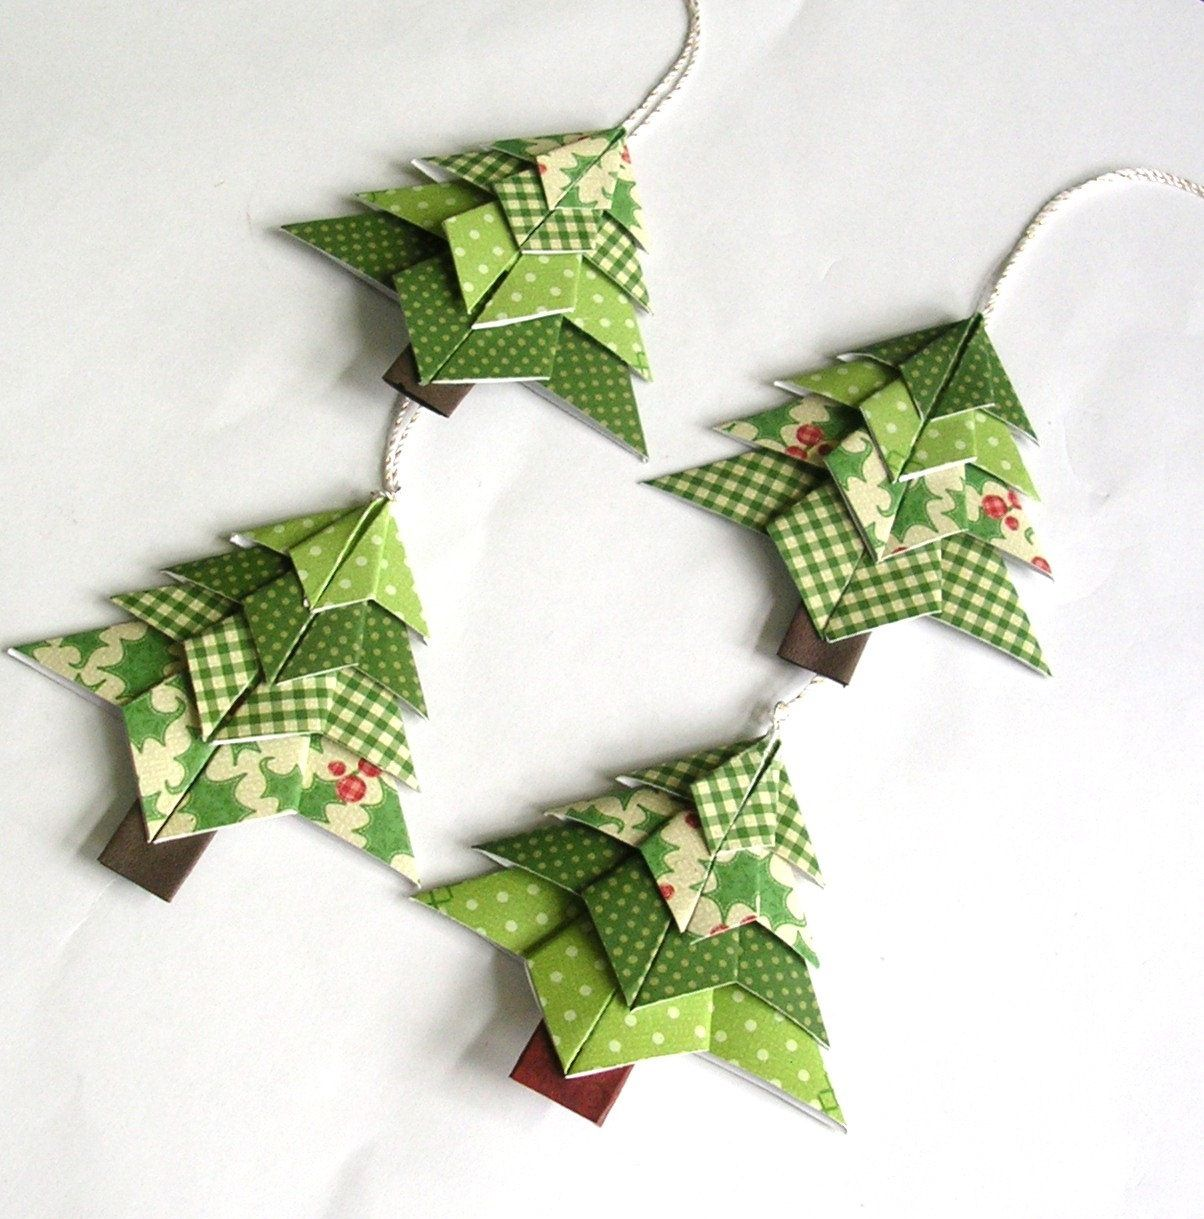 Homemade Christmas Ornaments -An Origami Snowflake | 1219x1204